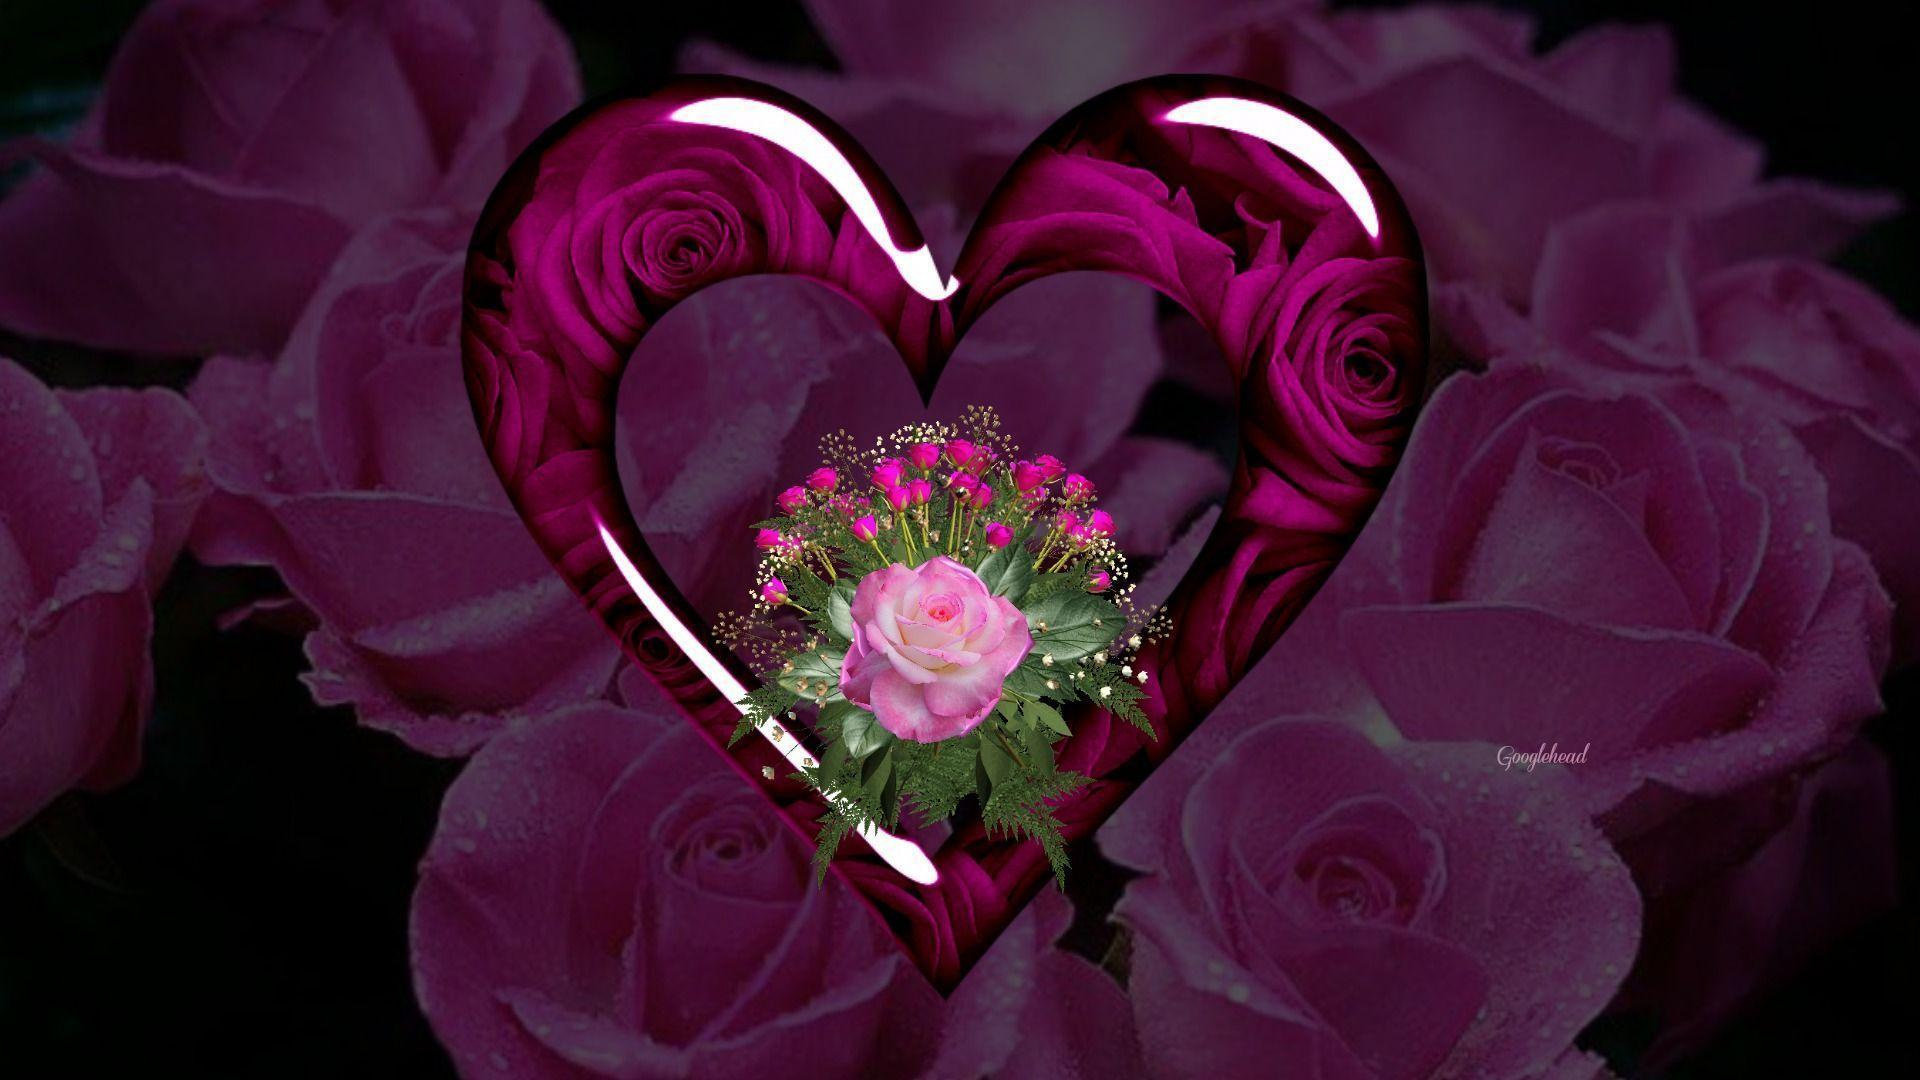 Red roses and hearts wallpapers wallpaper cave - Pics of roses and hearts ...